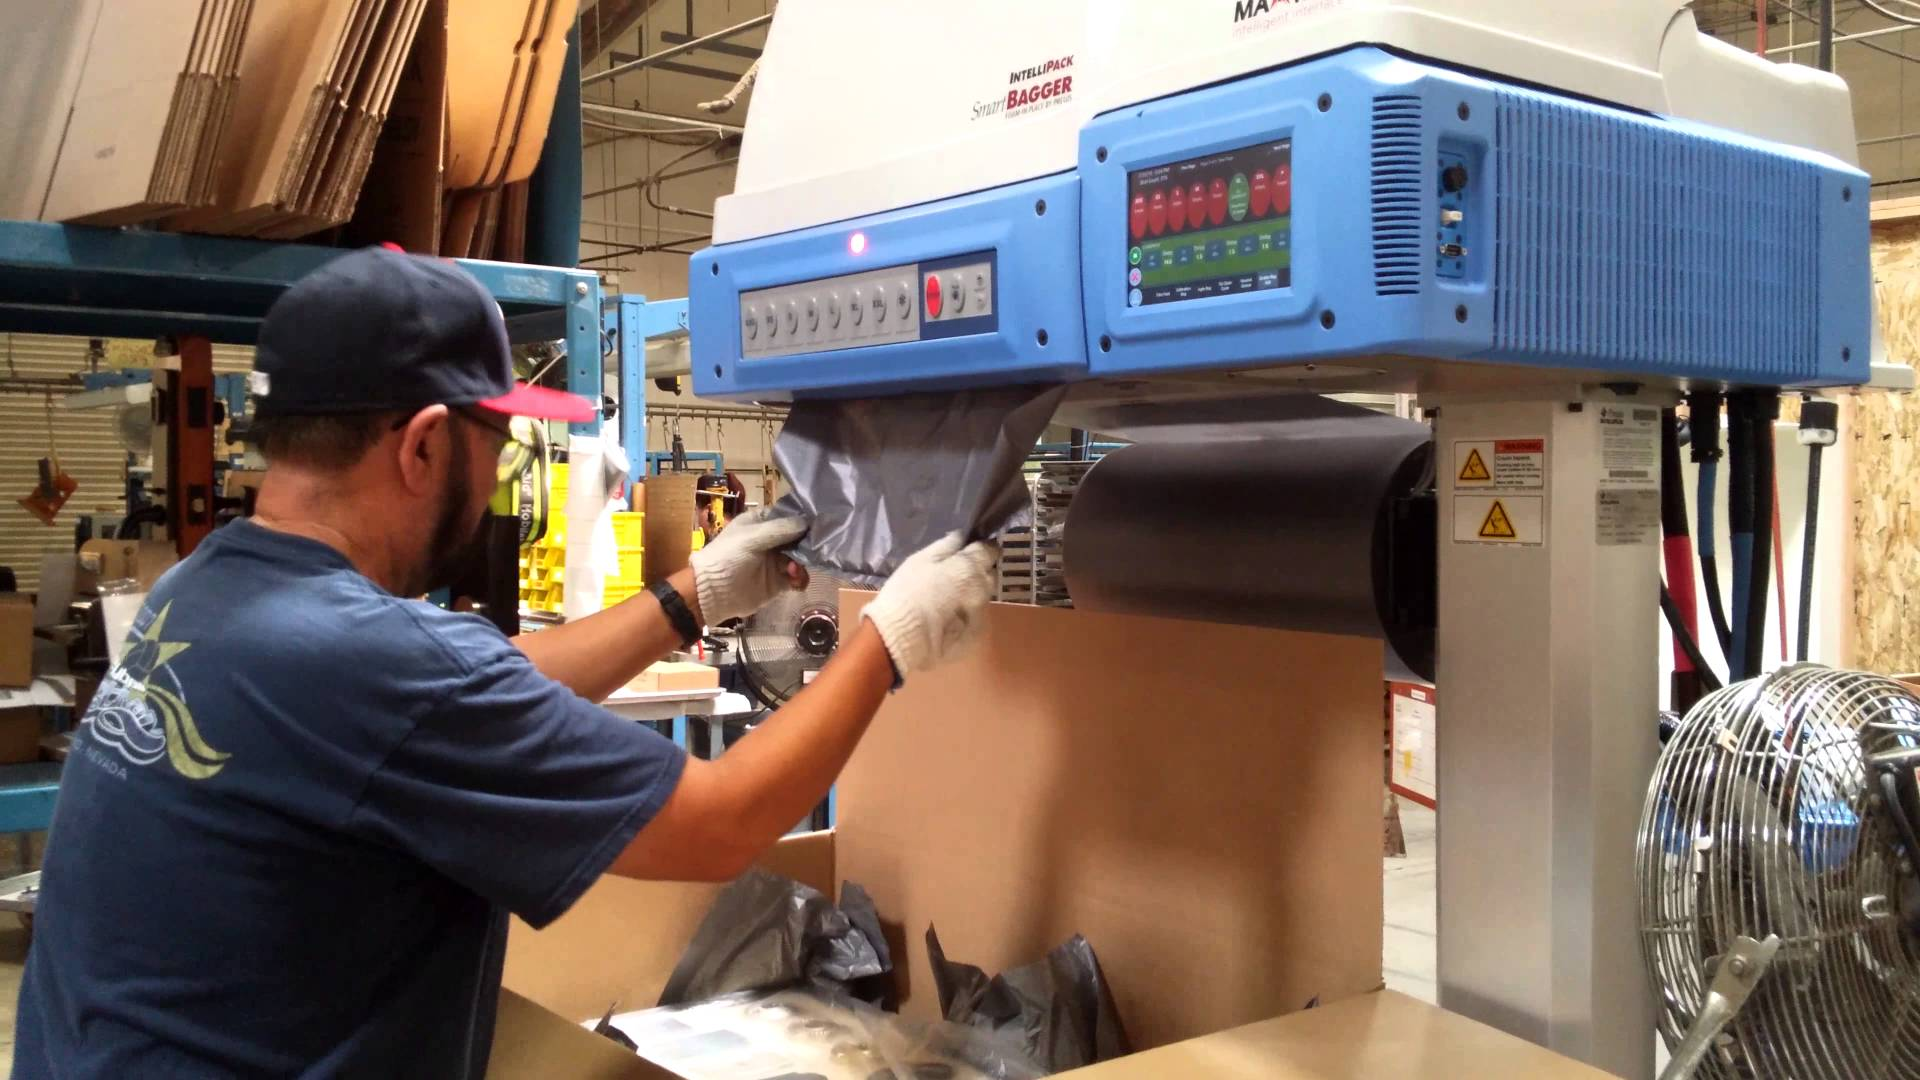 Foam in place packaging allows operators to work smarter and more simply for maximum productivity while reducing or eliminating damage expenses.